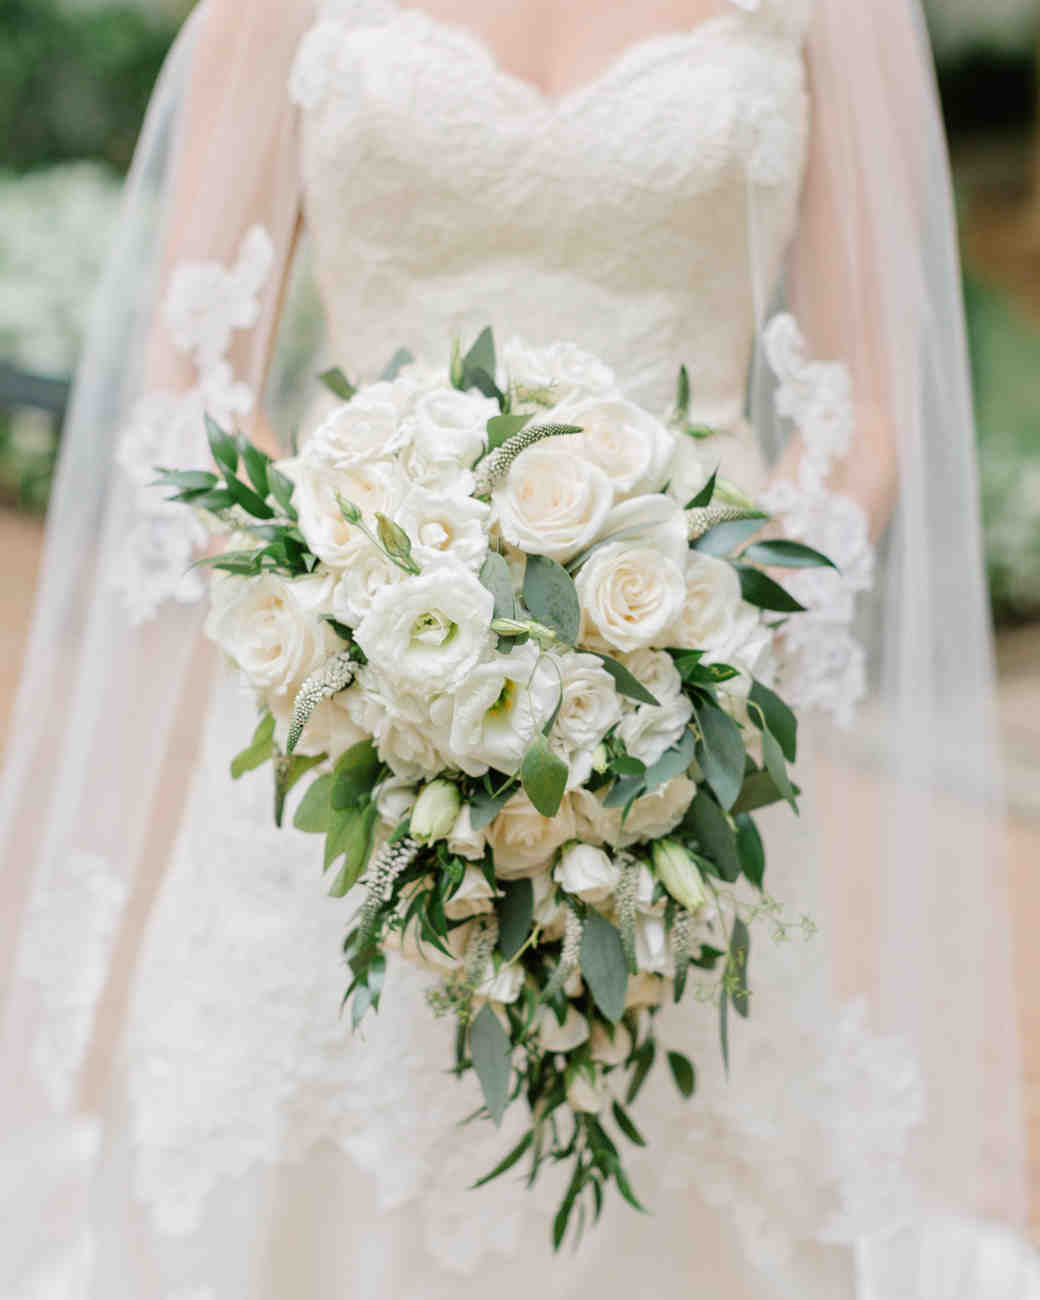 Wedding Flower Bouquets Ideas: 52 Ideas For Your Spring Wedding Bouquet